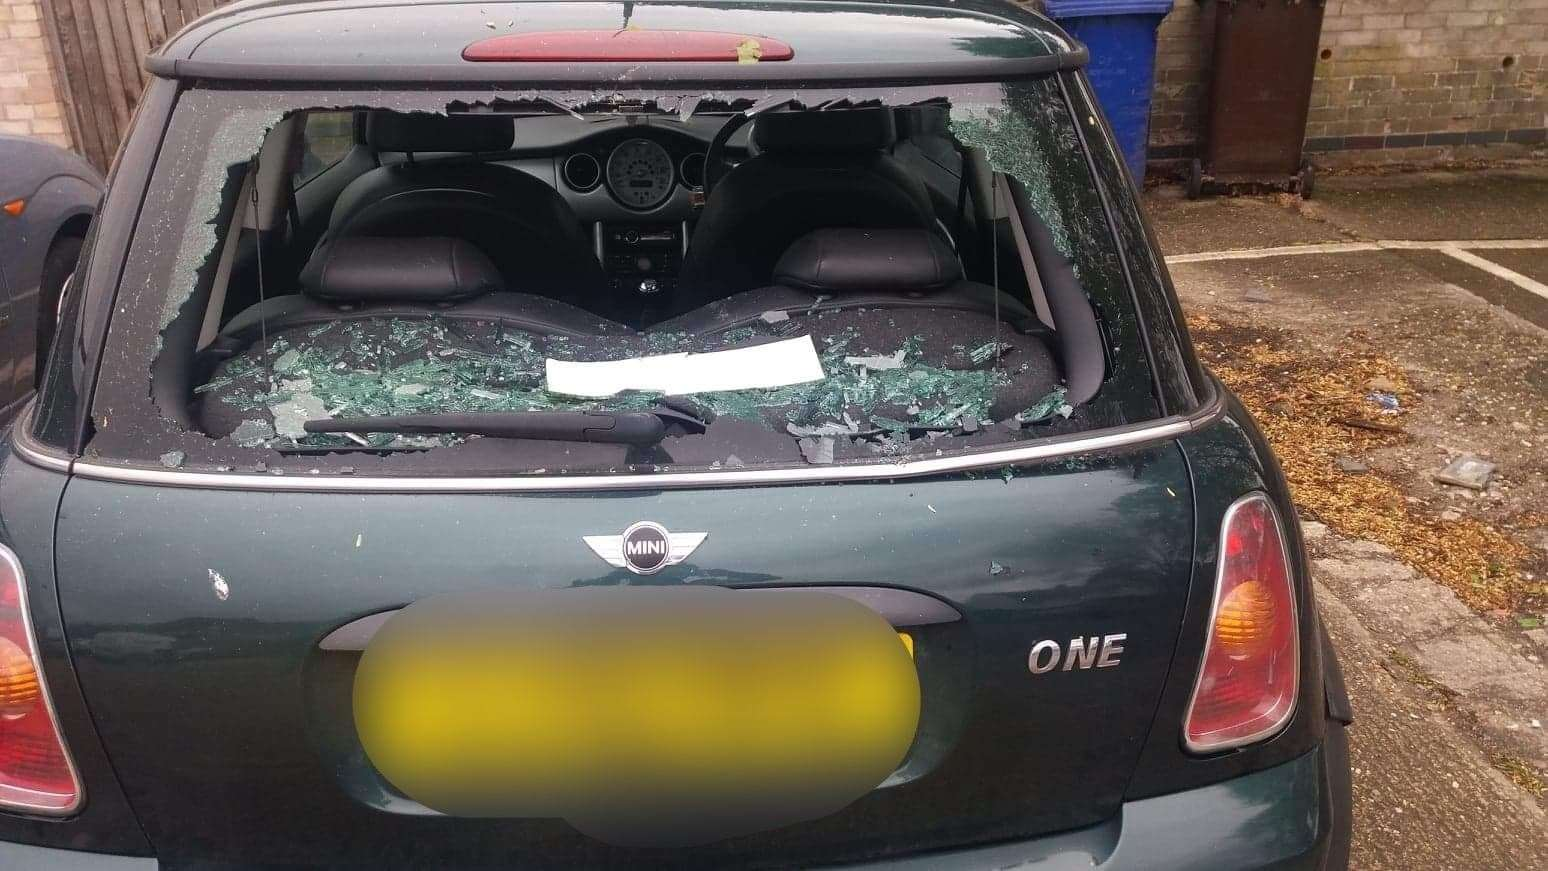 The rear window of a Mini was smashed in Beeton's Way, Bury St Edmunds, overnight on Saturday, April 27 and Sunday, April 28. Picture submitted by owner.